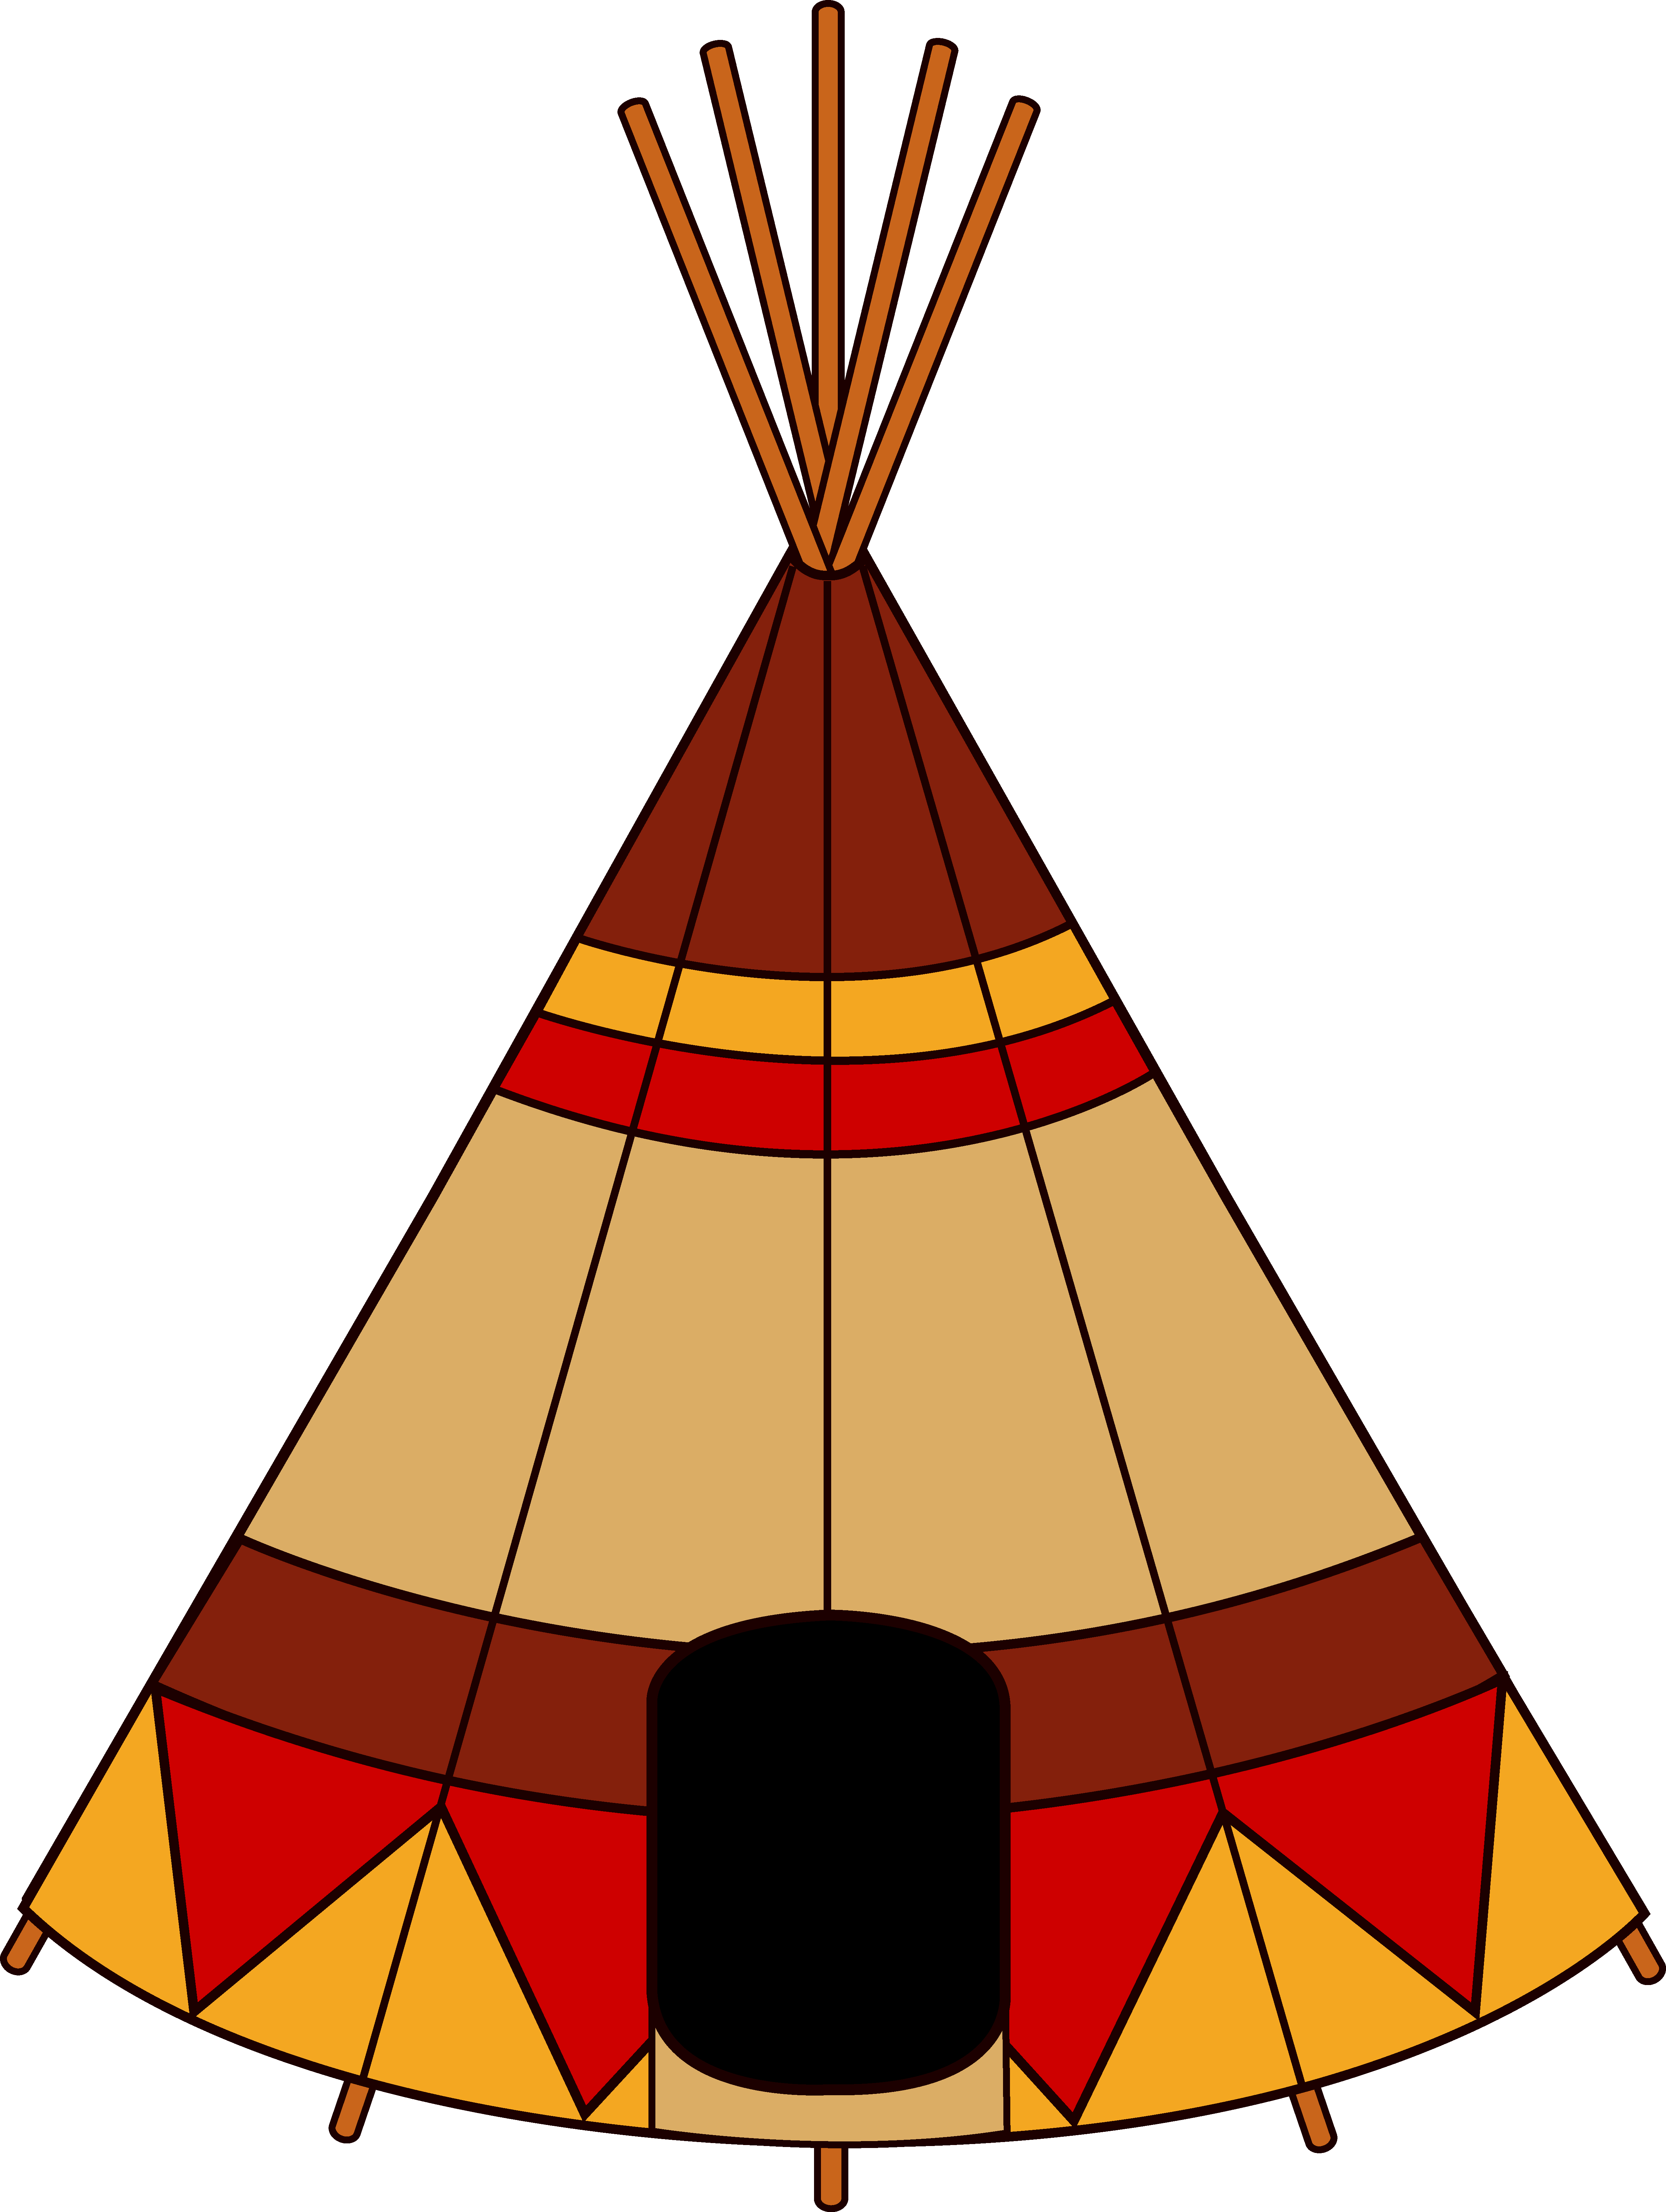 how to draw a tipi easy